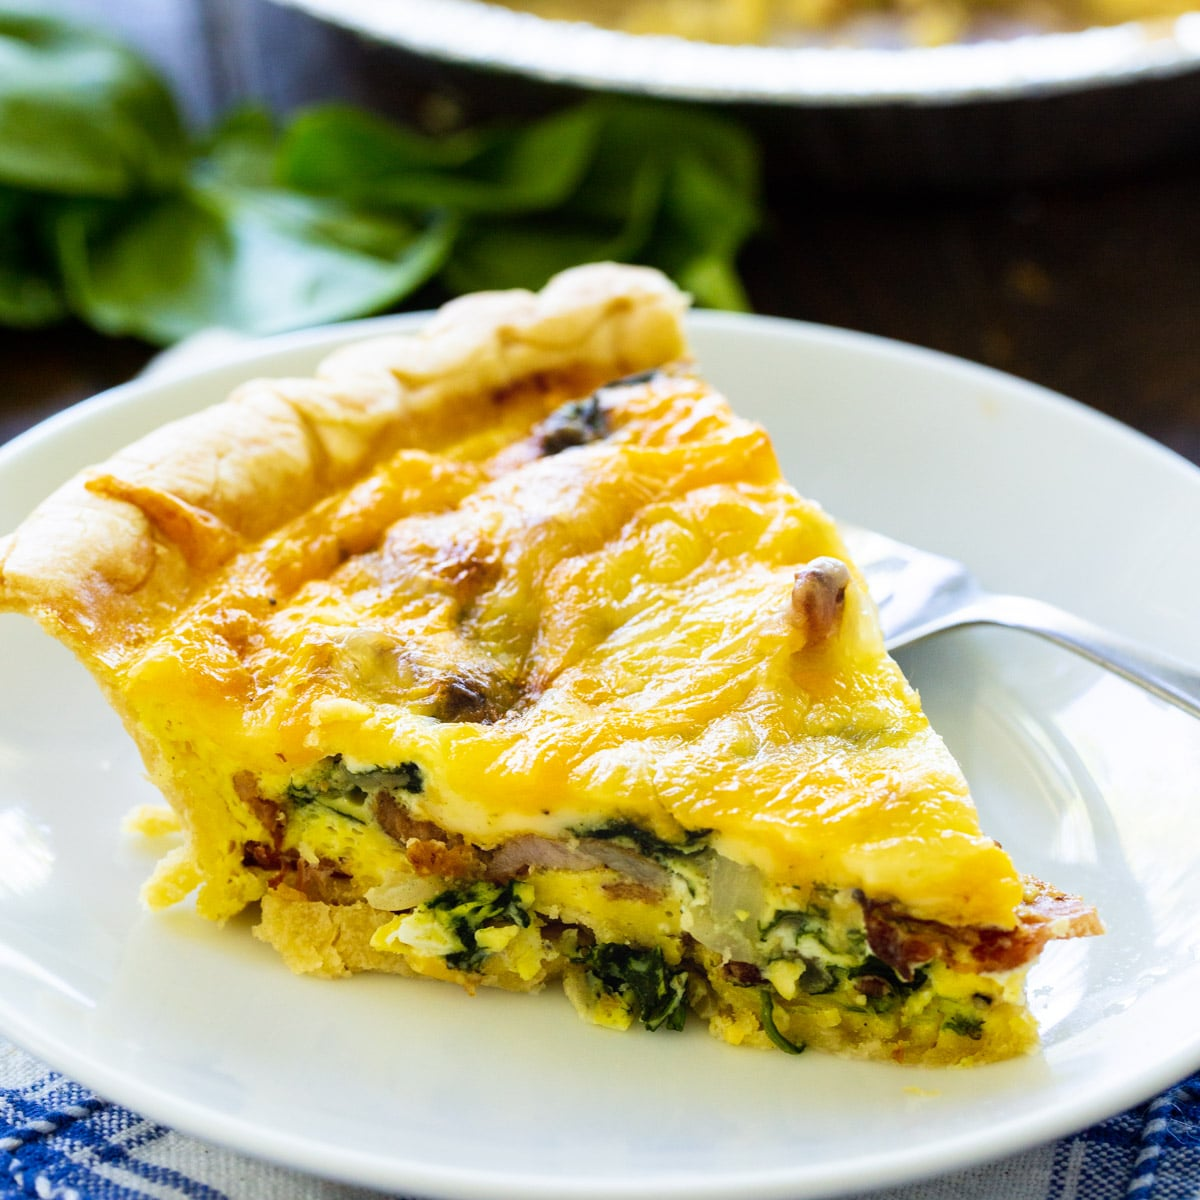 Slice of Bacon Florentine Quiche on a plate.